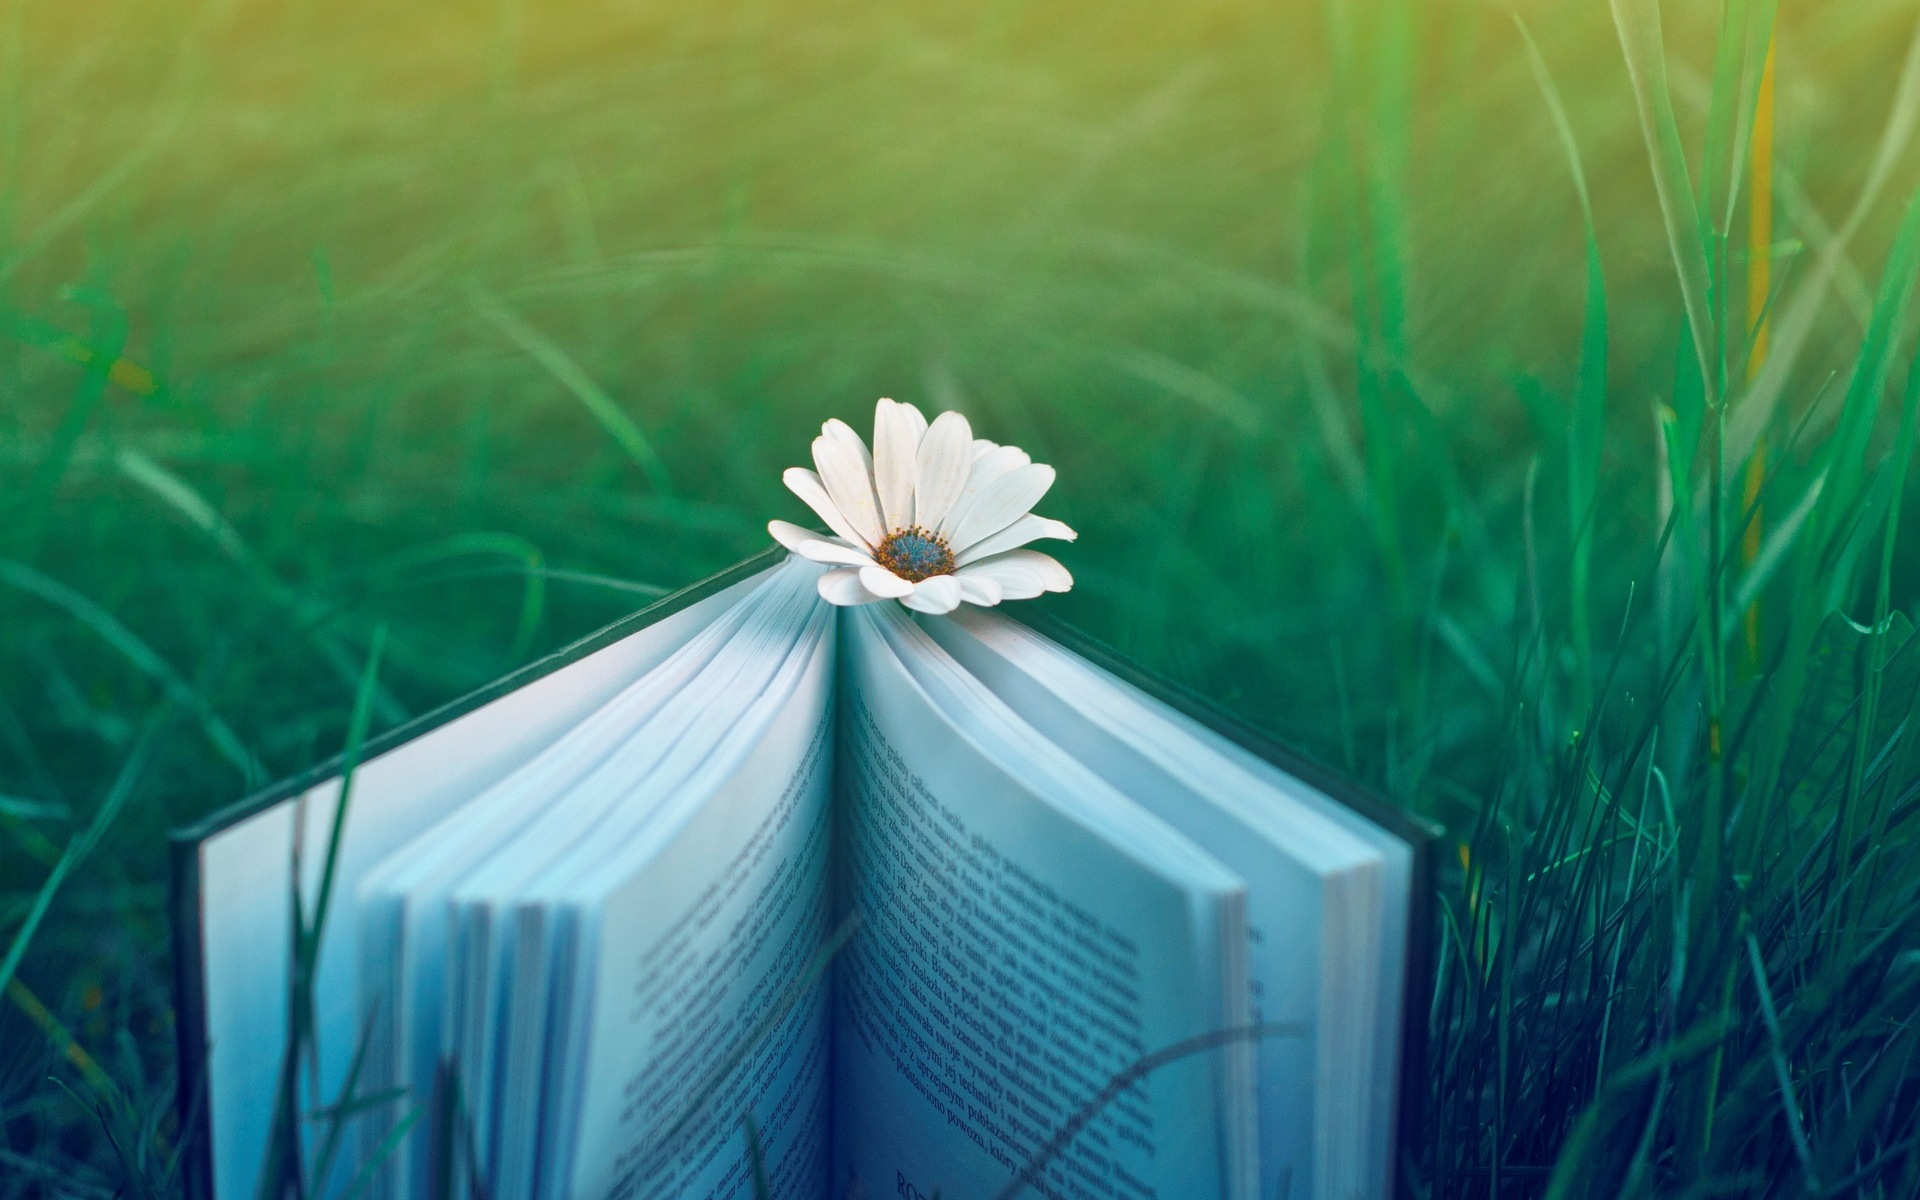 a white flower working as bookmark reading is made pleasant and comfortable imagine lying on the grass hd creative wallpaper free wallpaper world free wallpaper world